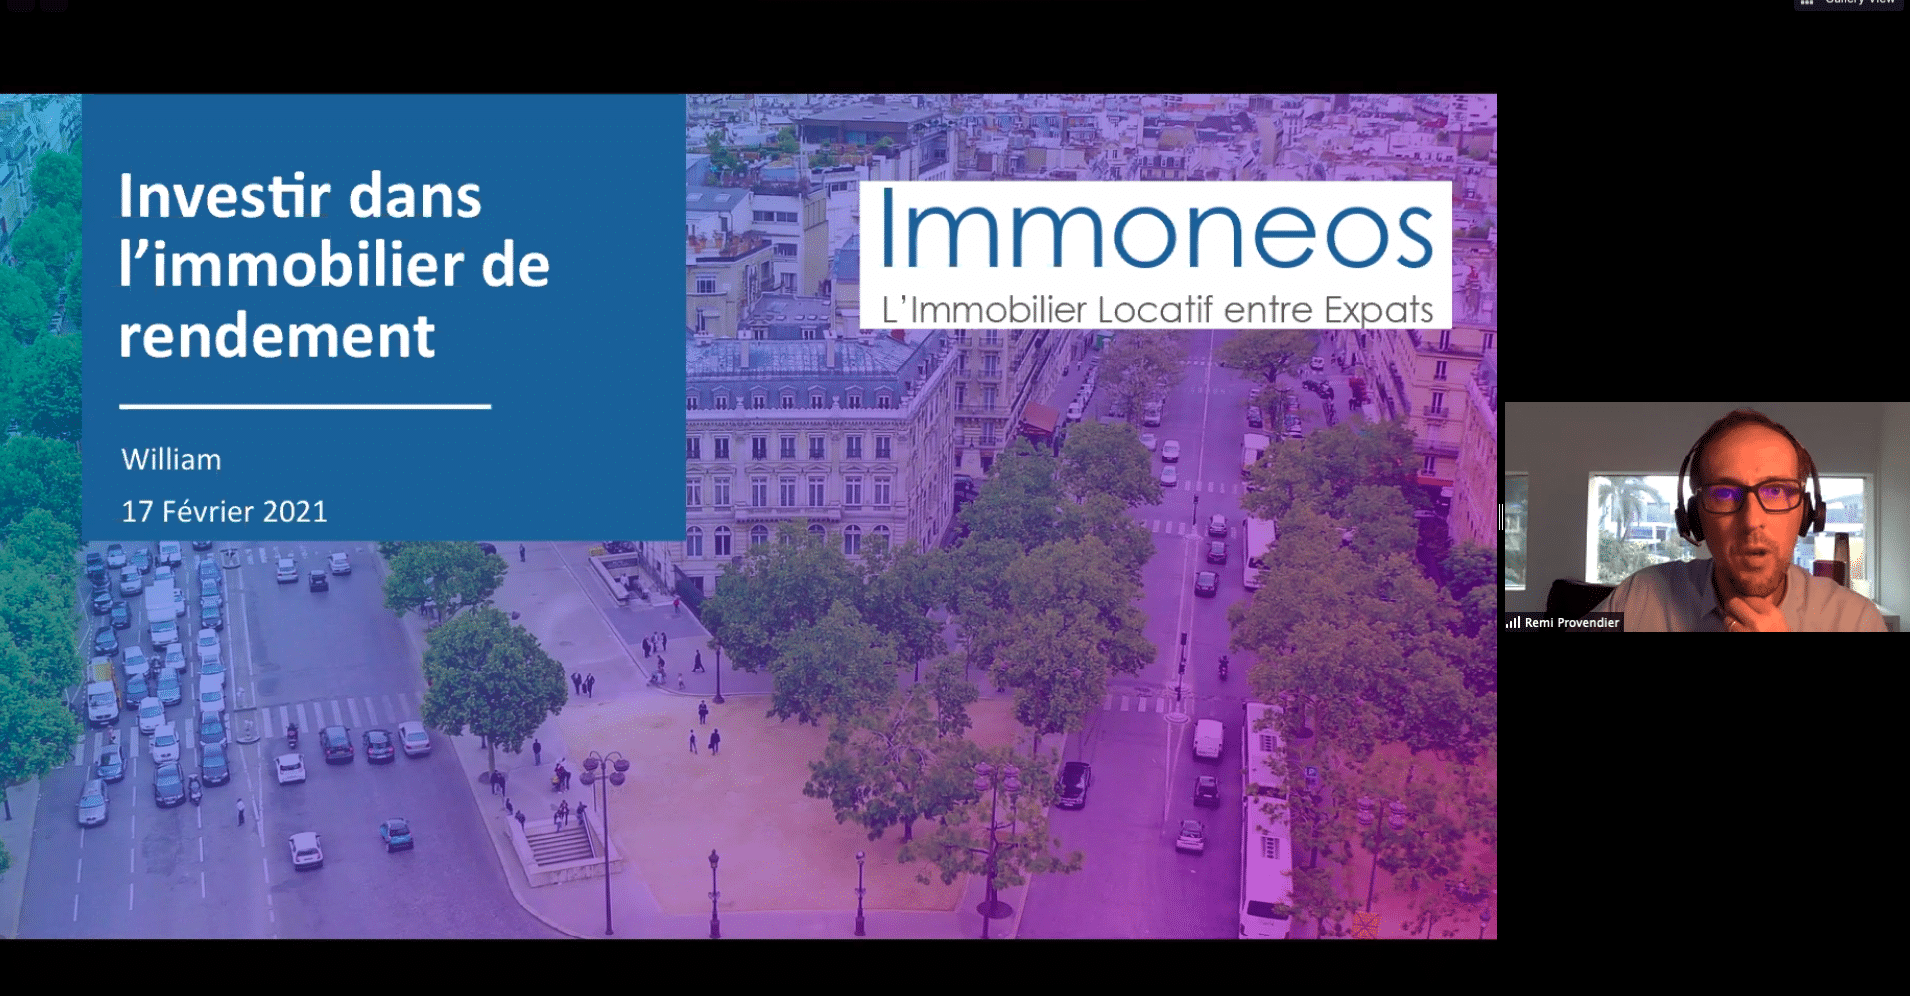 [VIDEO] Investir dans l'immobilier de rendement